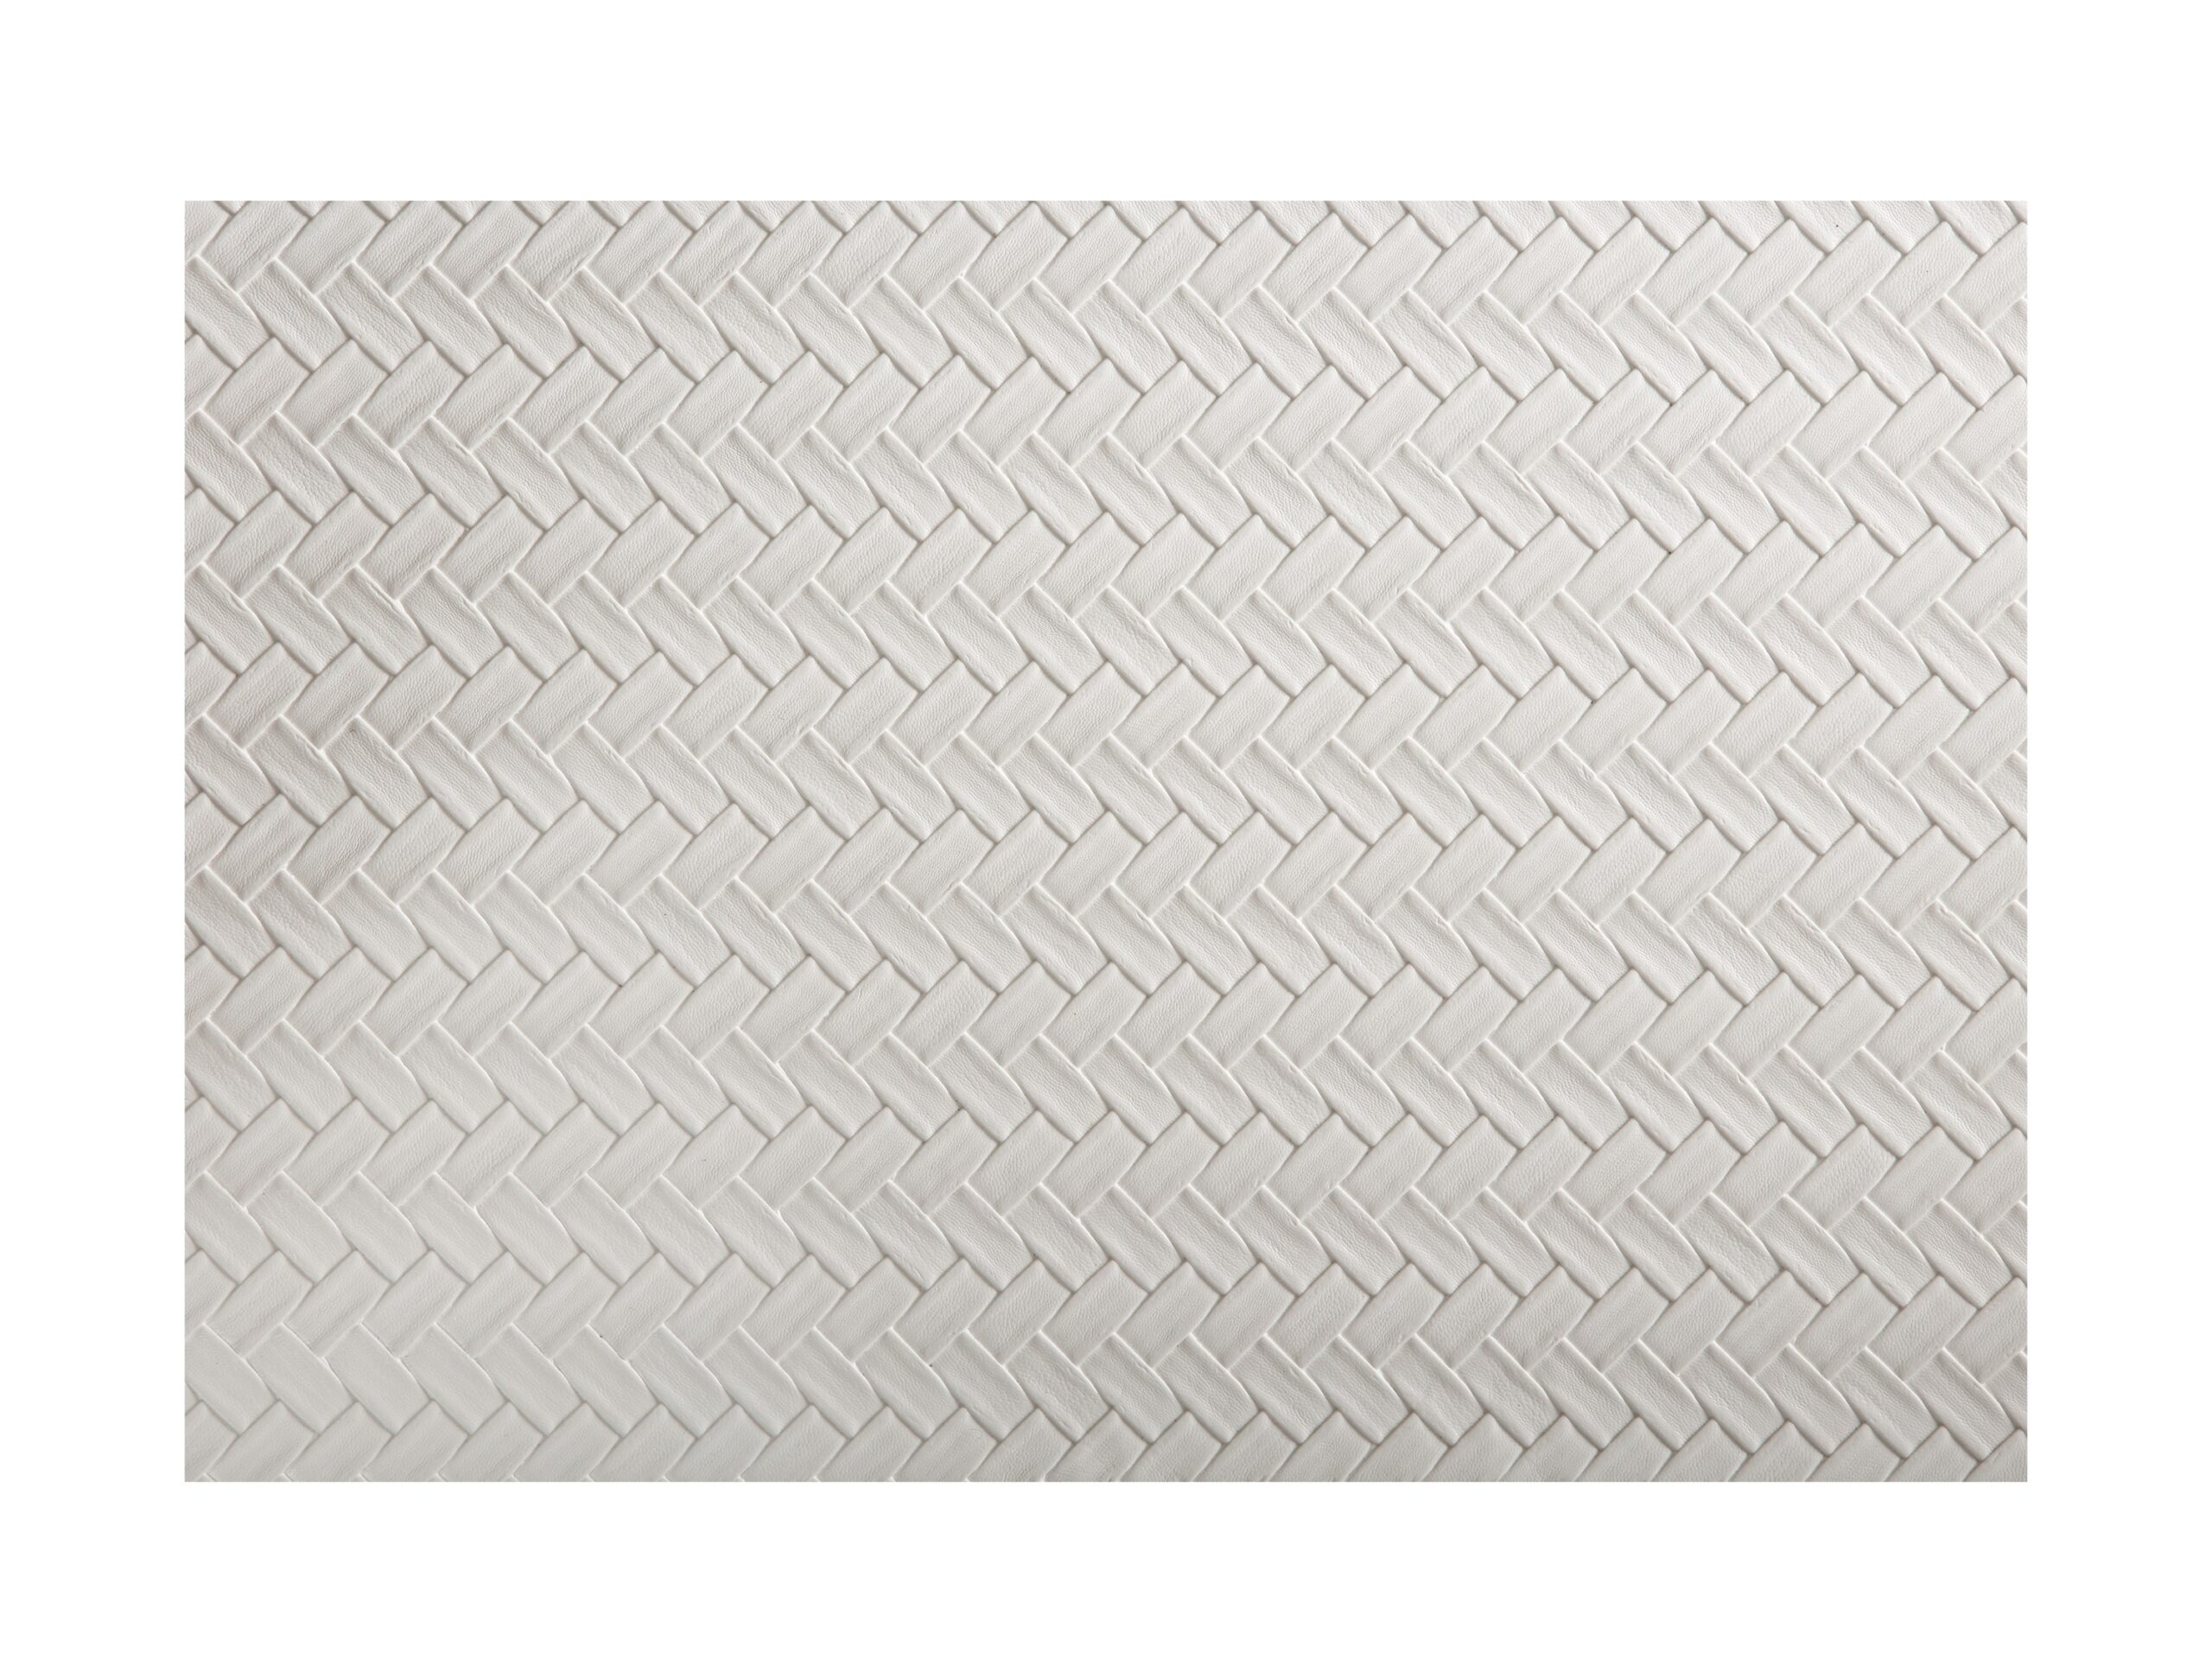 Maxwell Williams Placemat Leather Look Ivory 45x30